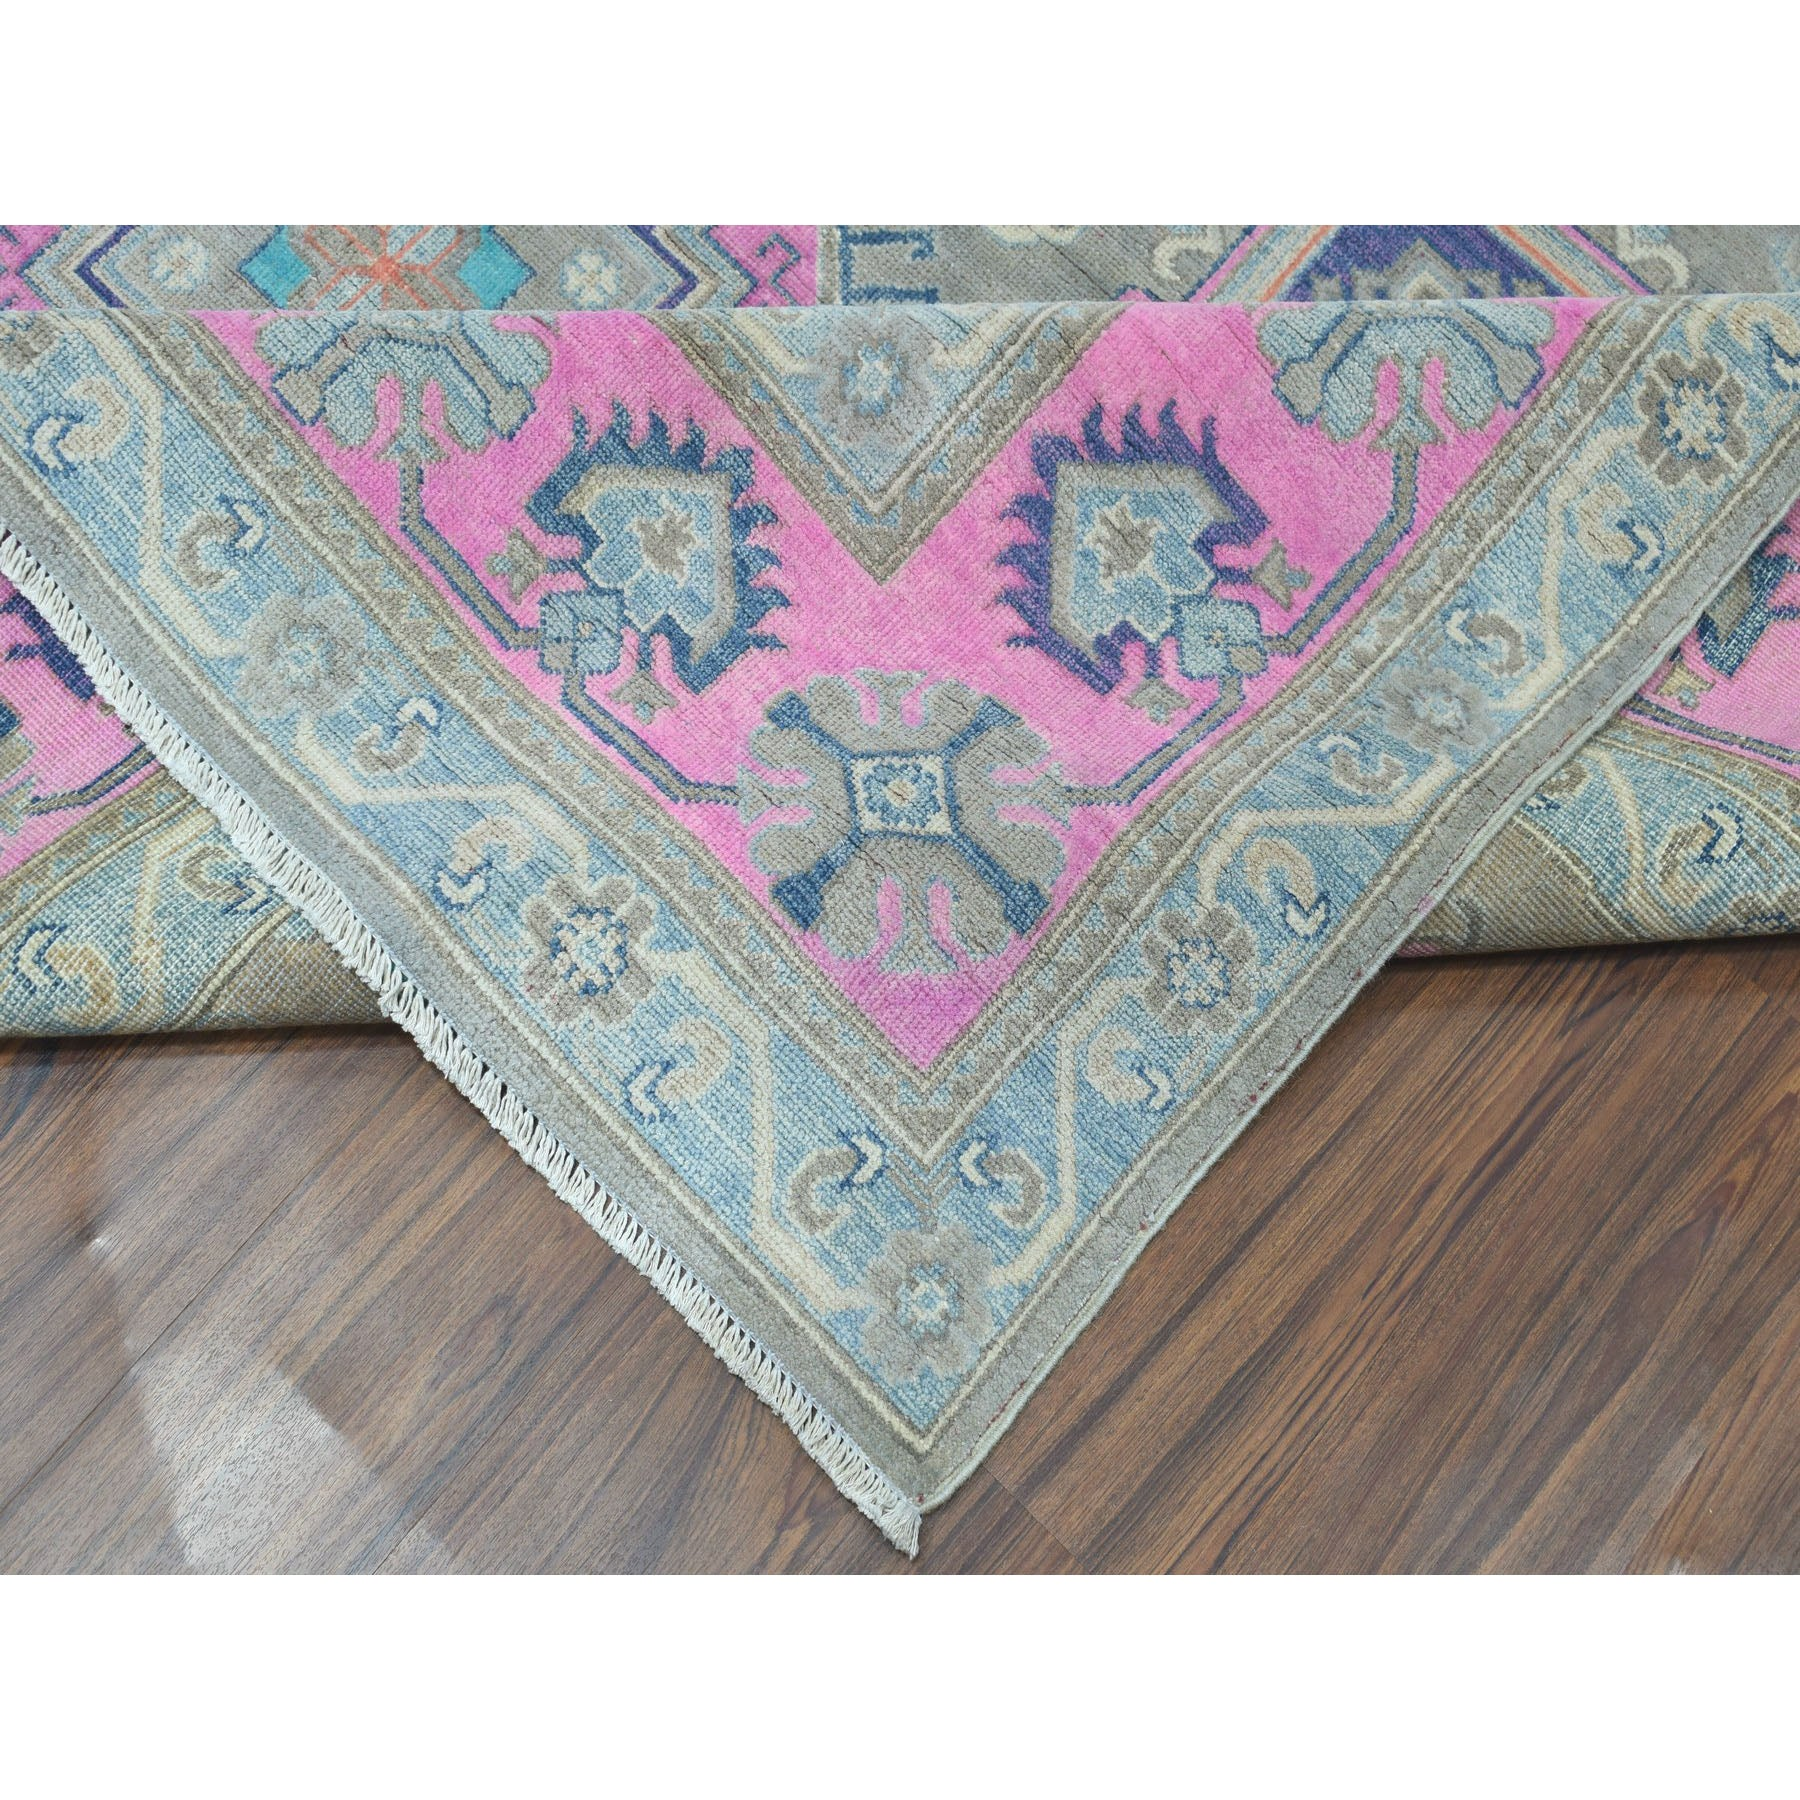 "Handmade Kazak Rectangle Rug > Design# SH50554 > Size: 8'-0"" x 9'-9"" [ONLINE ONLY]"